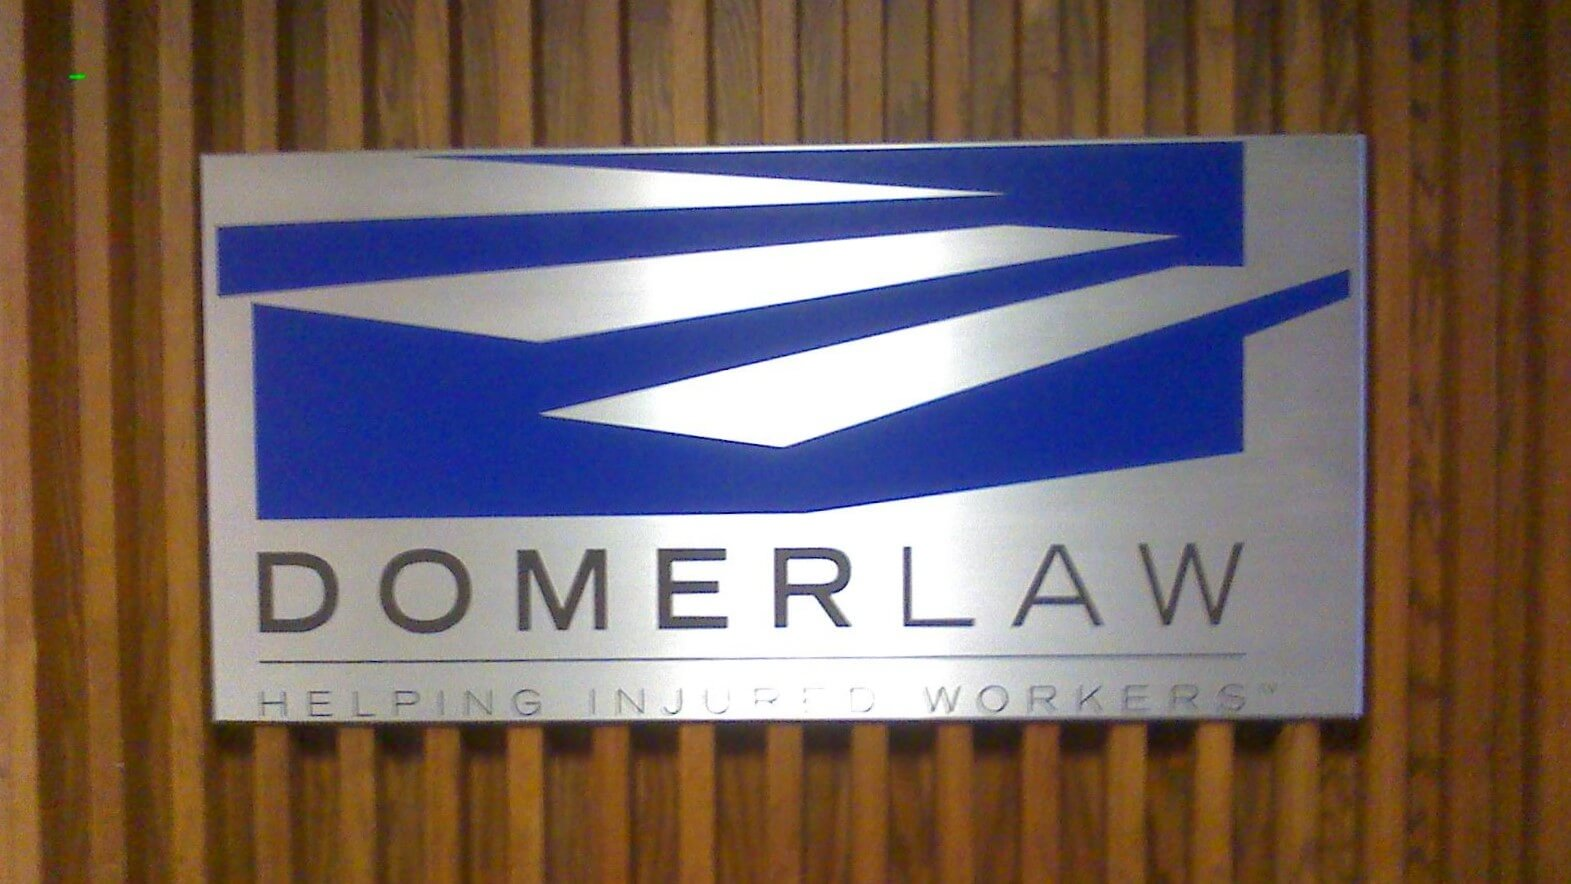 Outdoor custom Law office sign made out of foam for Magner, Hueneke, Smith & Borda